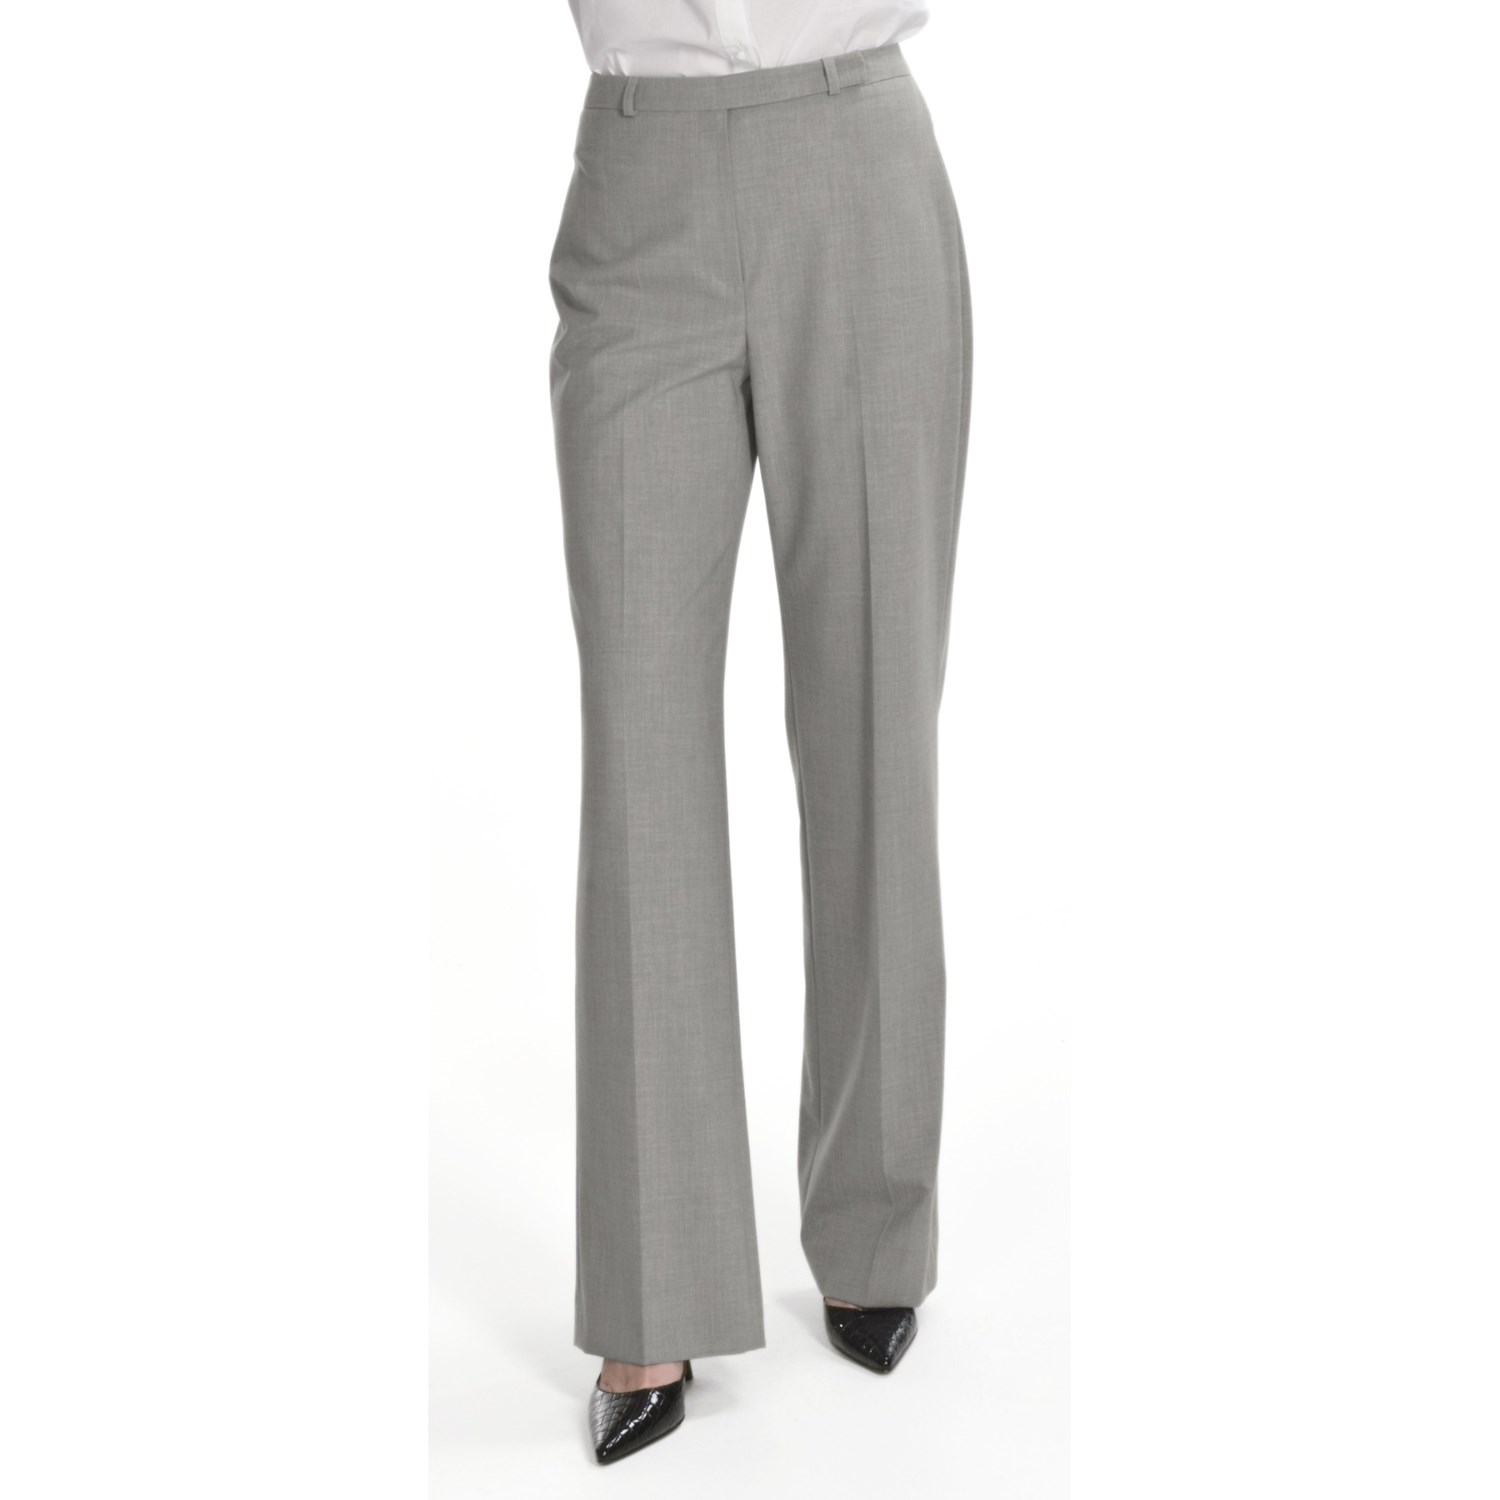 Elegant Lets See How To Match Grey Pants Outfit The Key Is The Colour Combination A Colour Pallet Needs To Be Assimilated To Understand What To Wear With Grey Pants Grey Is A Rather  Collection Of Business Casual For Women And Getting